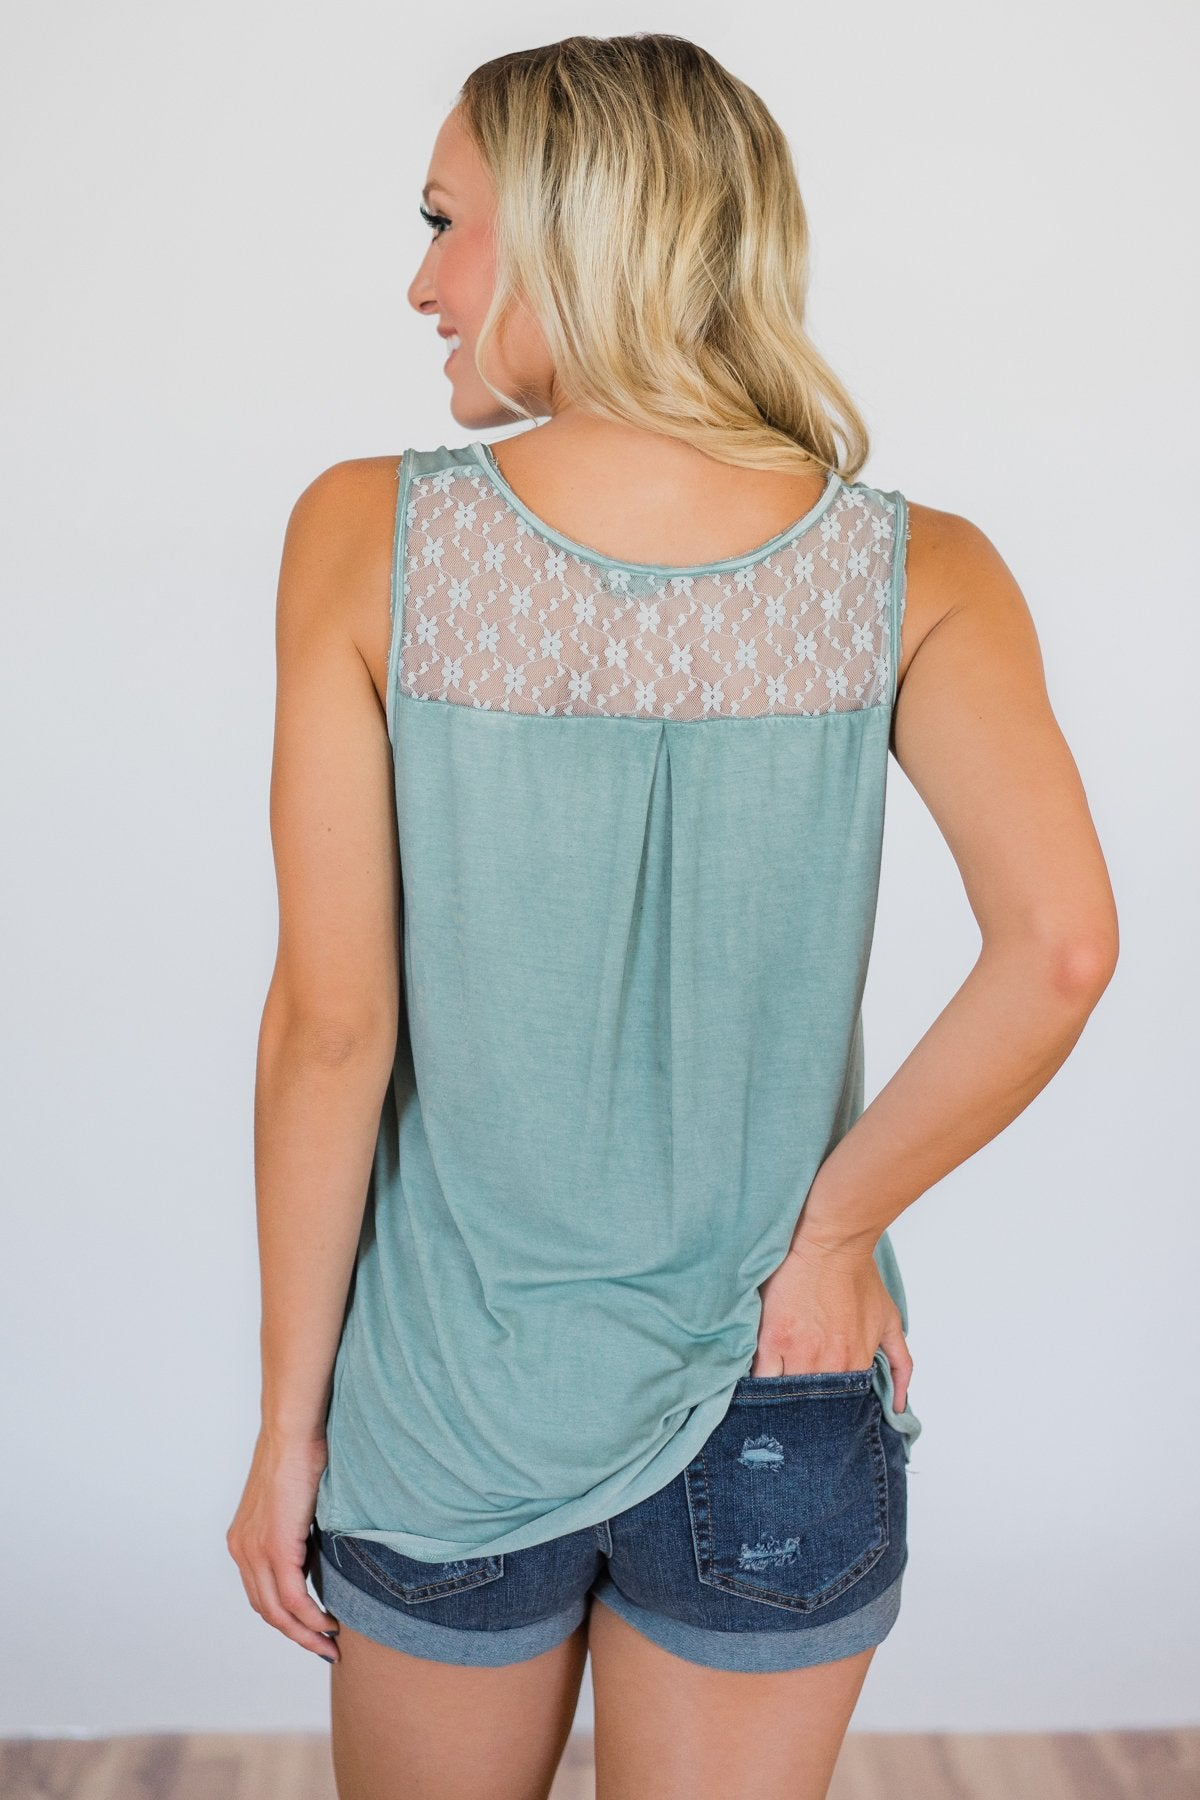 Best of my Days Lace & Zipper Tank Top- Vintage Sea Foam